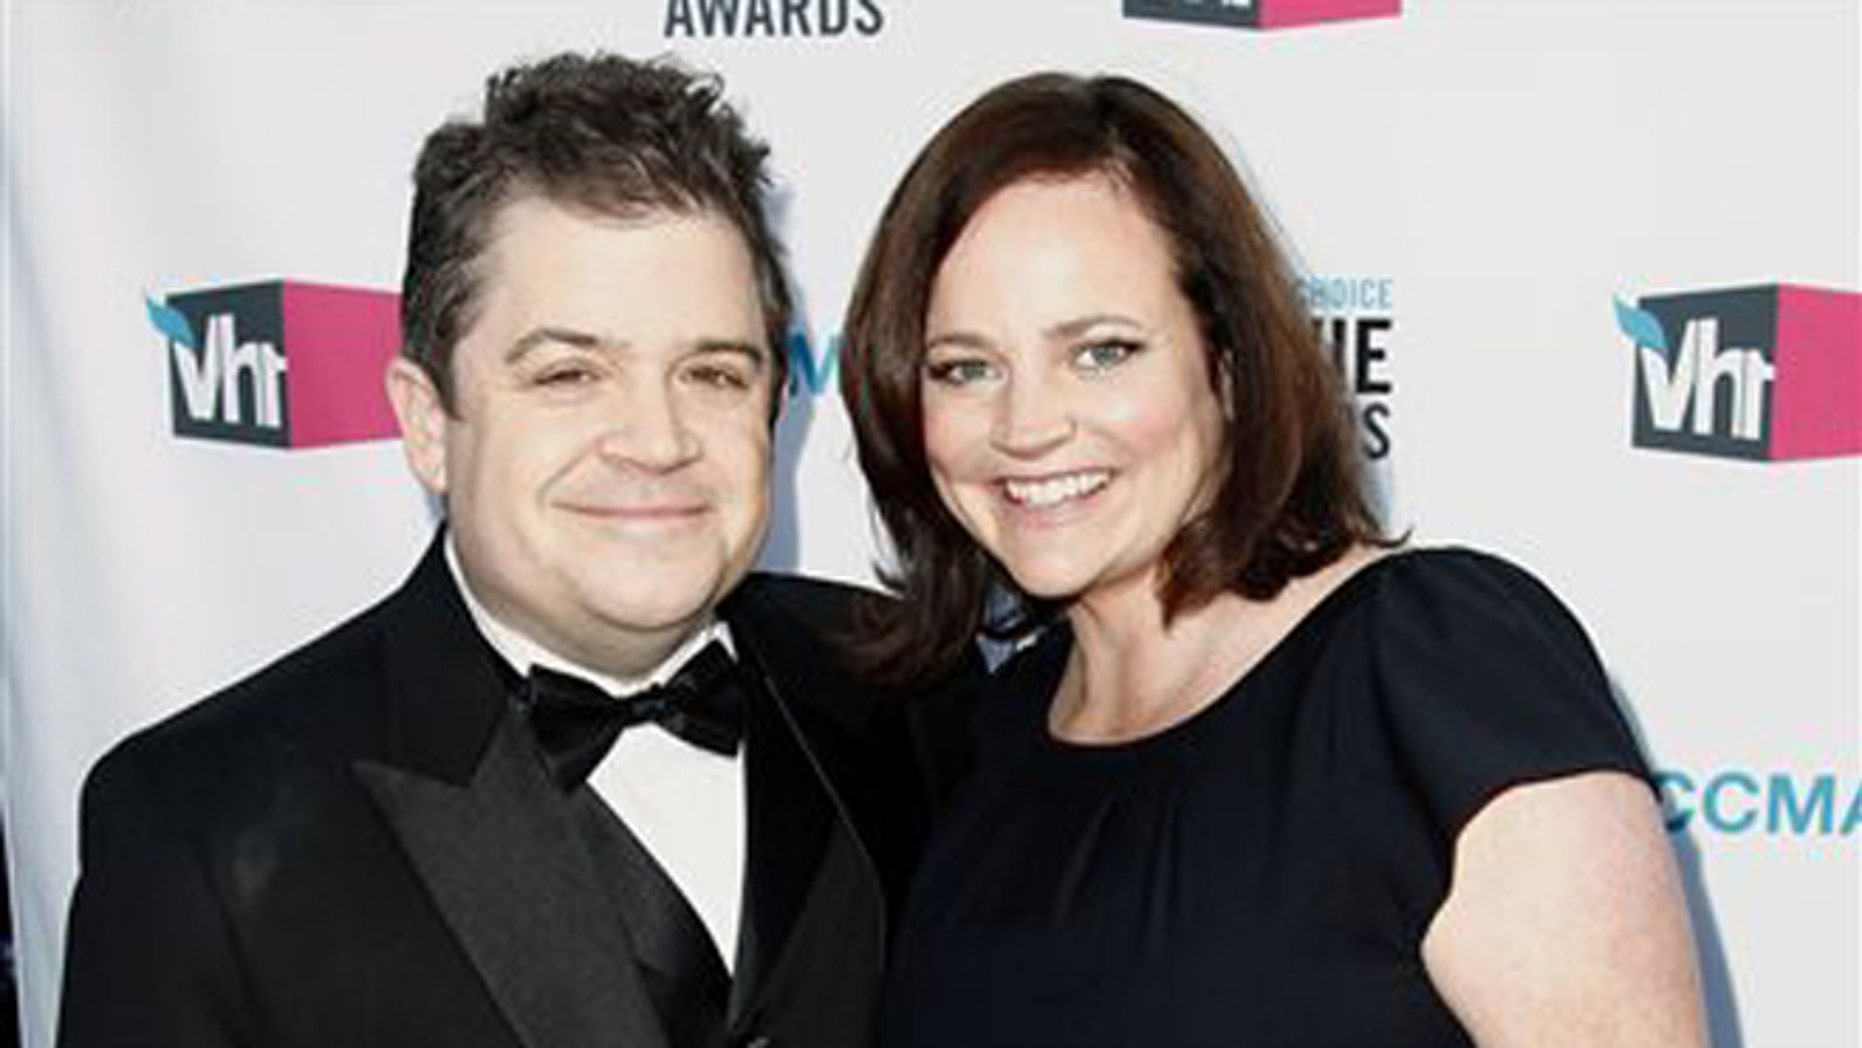 Patton Oswalt and his wife Michelle Eileen McNamara in Los Angeles in 2012. (AP Photo/Matt Sayles)